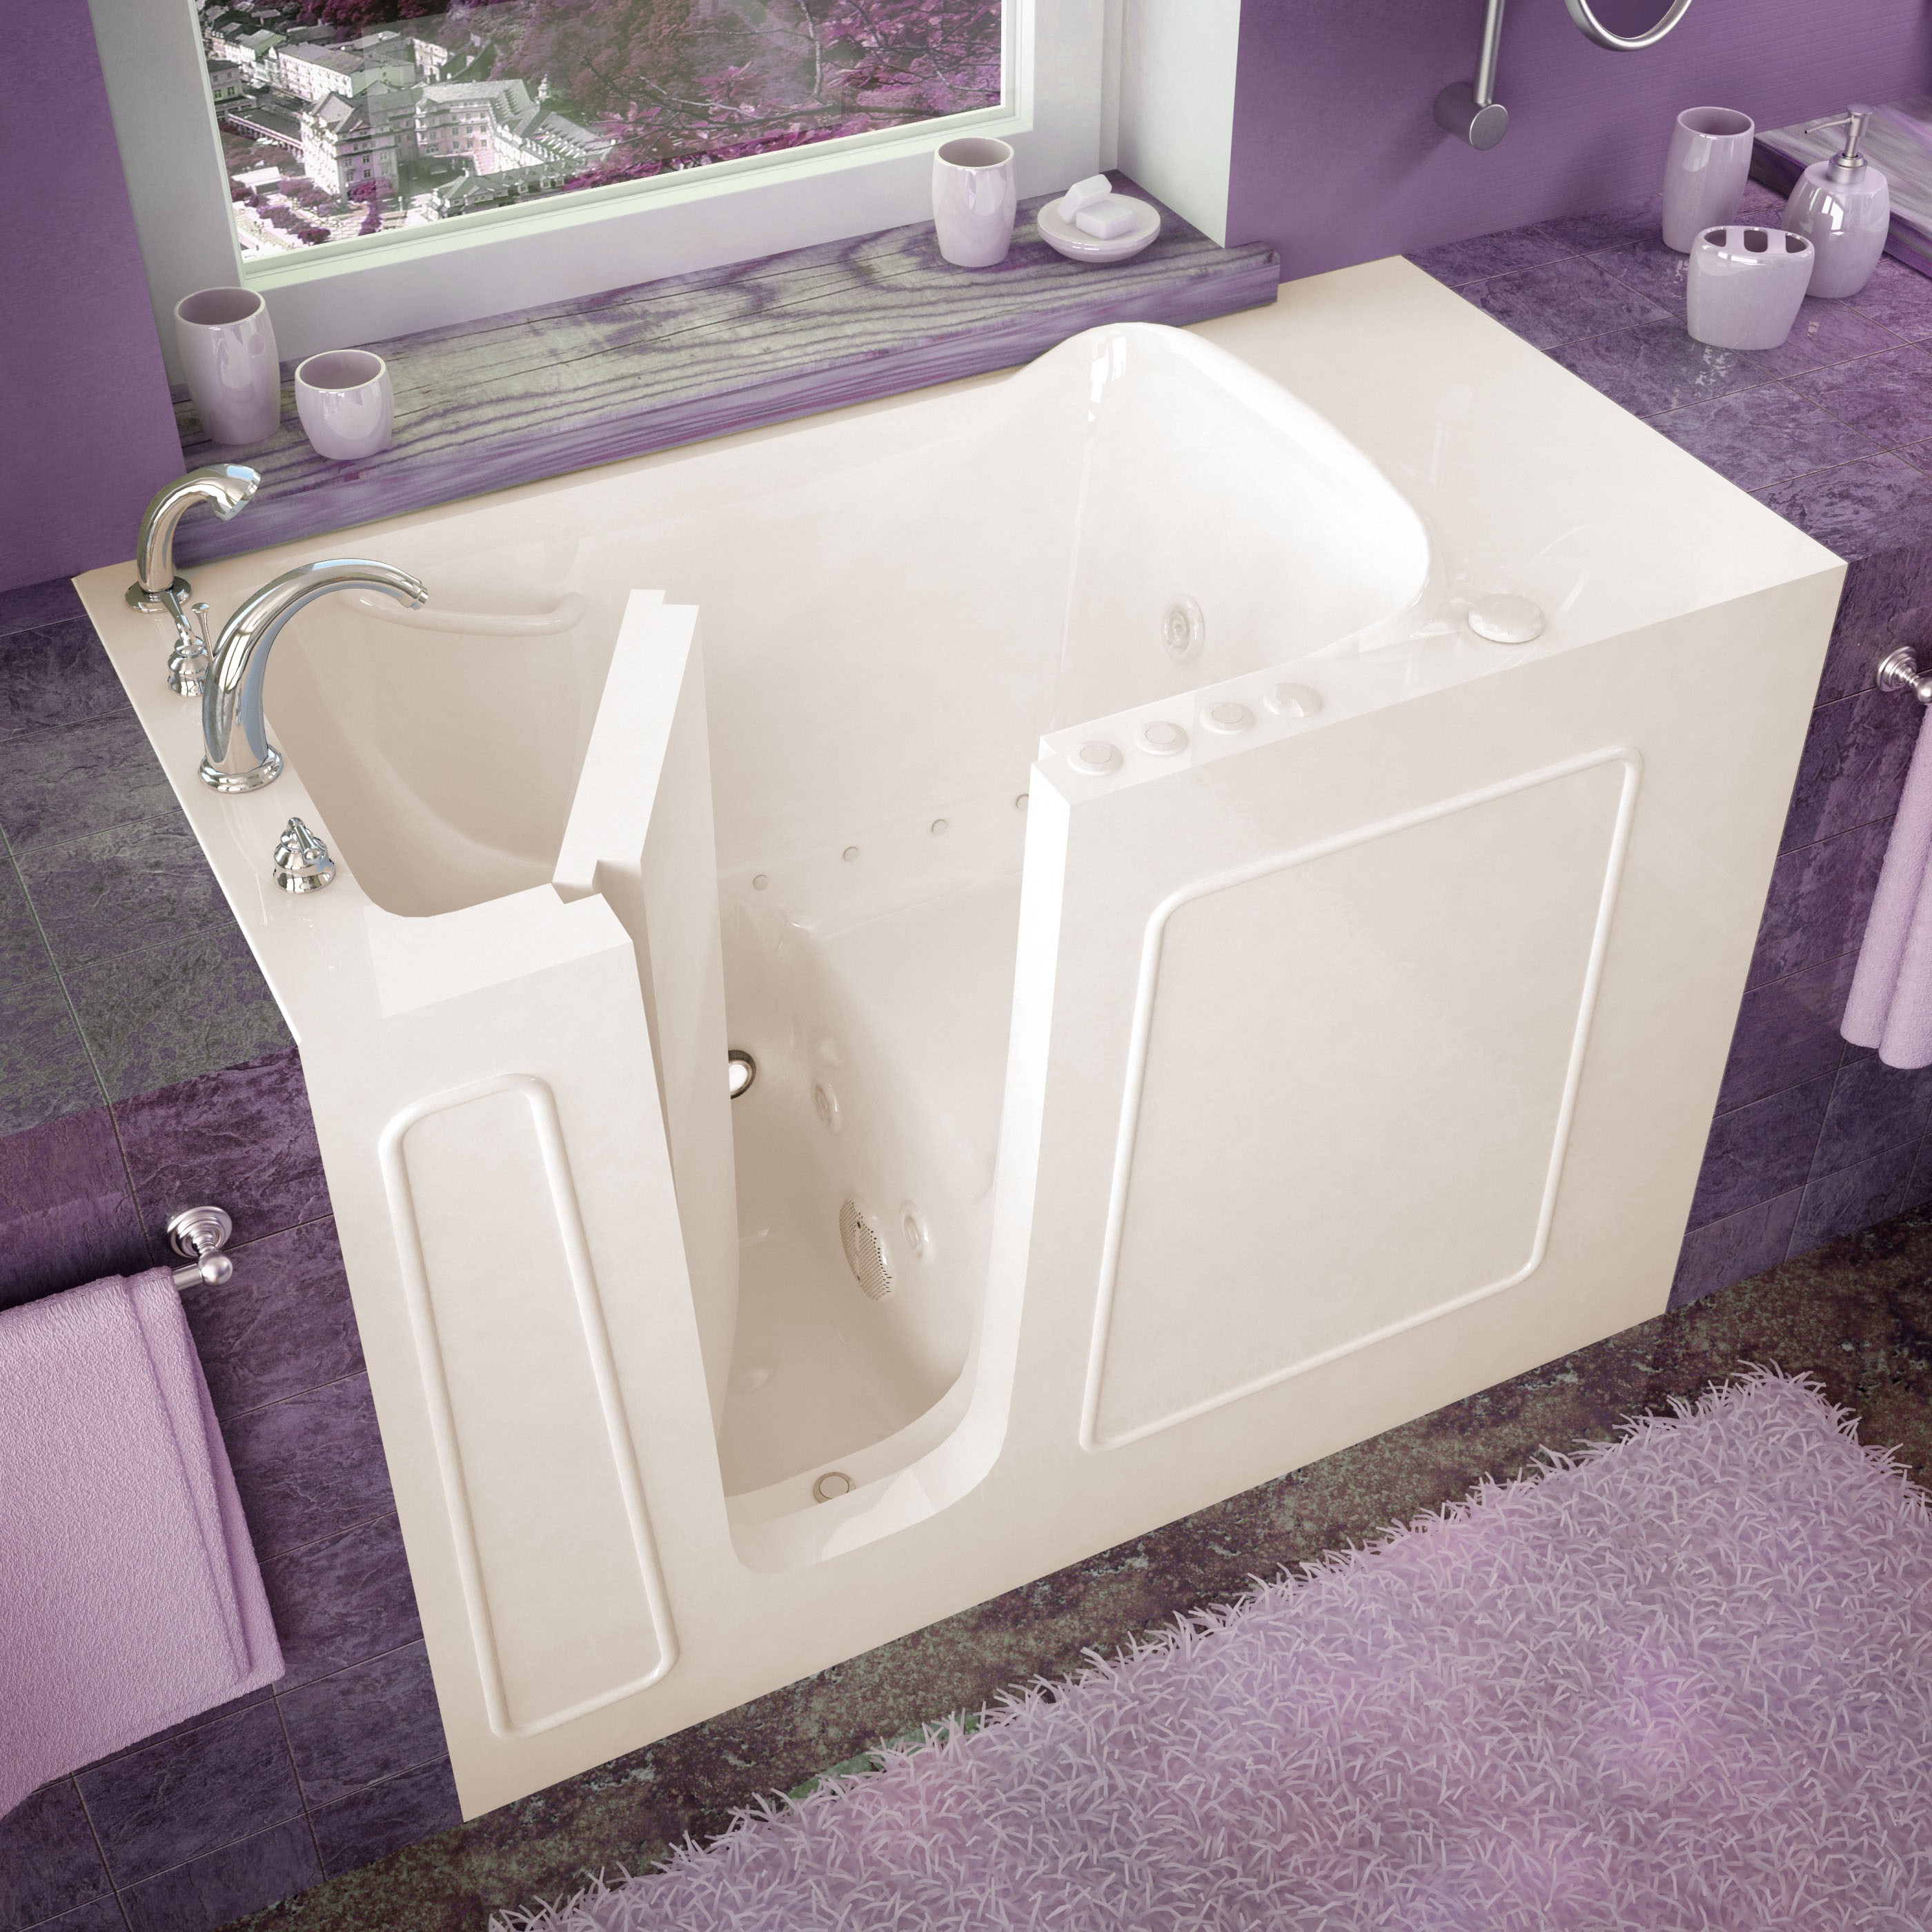 26x53 Left Drain Biscuit Whirlpool & Air Jetted Walk-In Bathtub